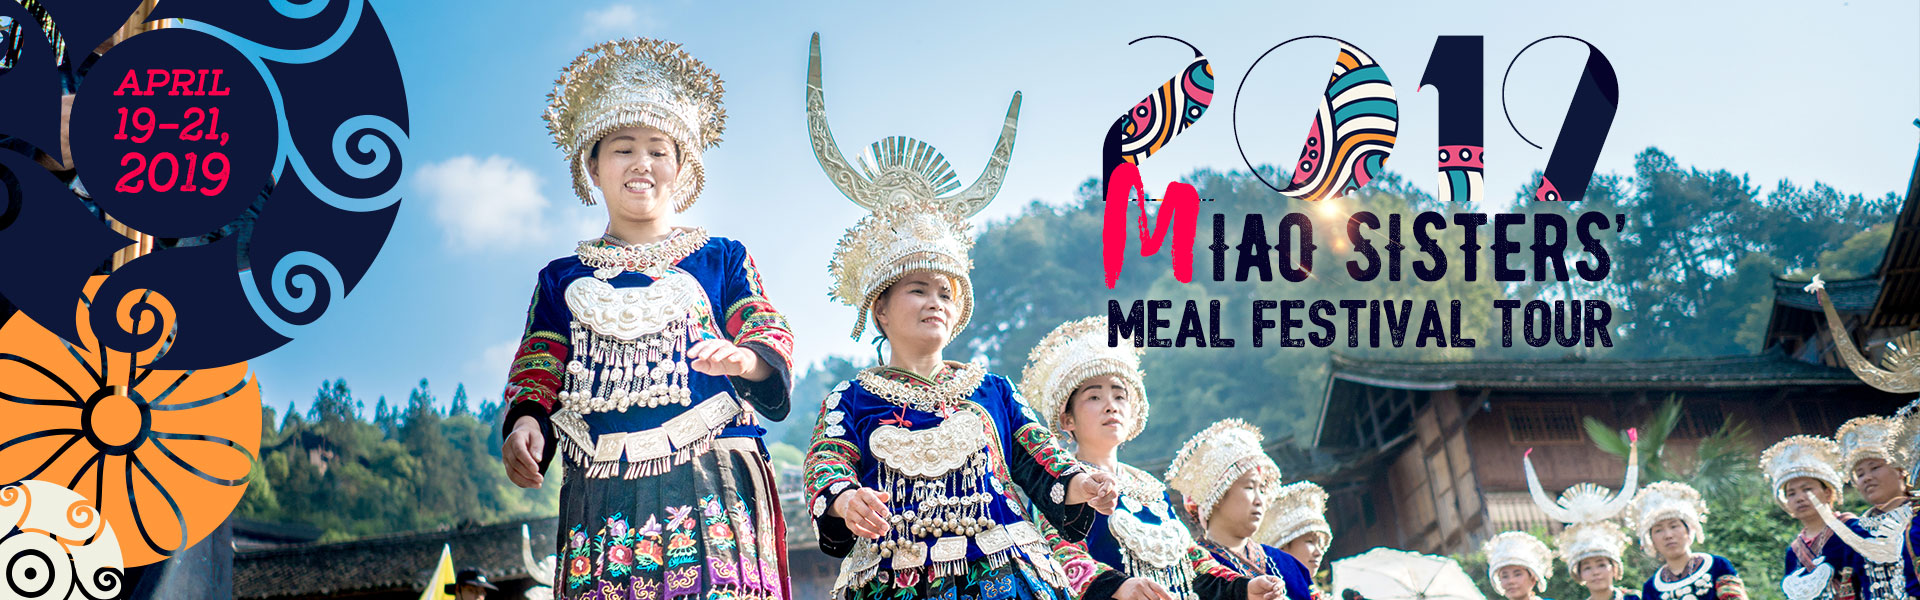 2019 Miao Sisters' Meal Festival Tour